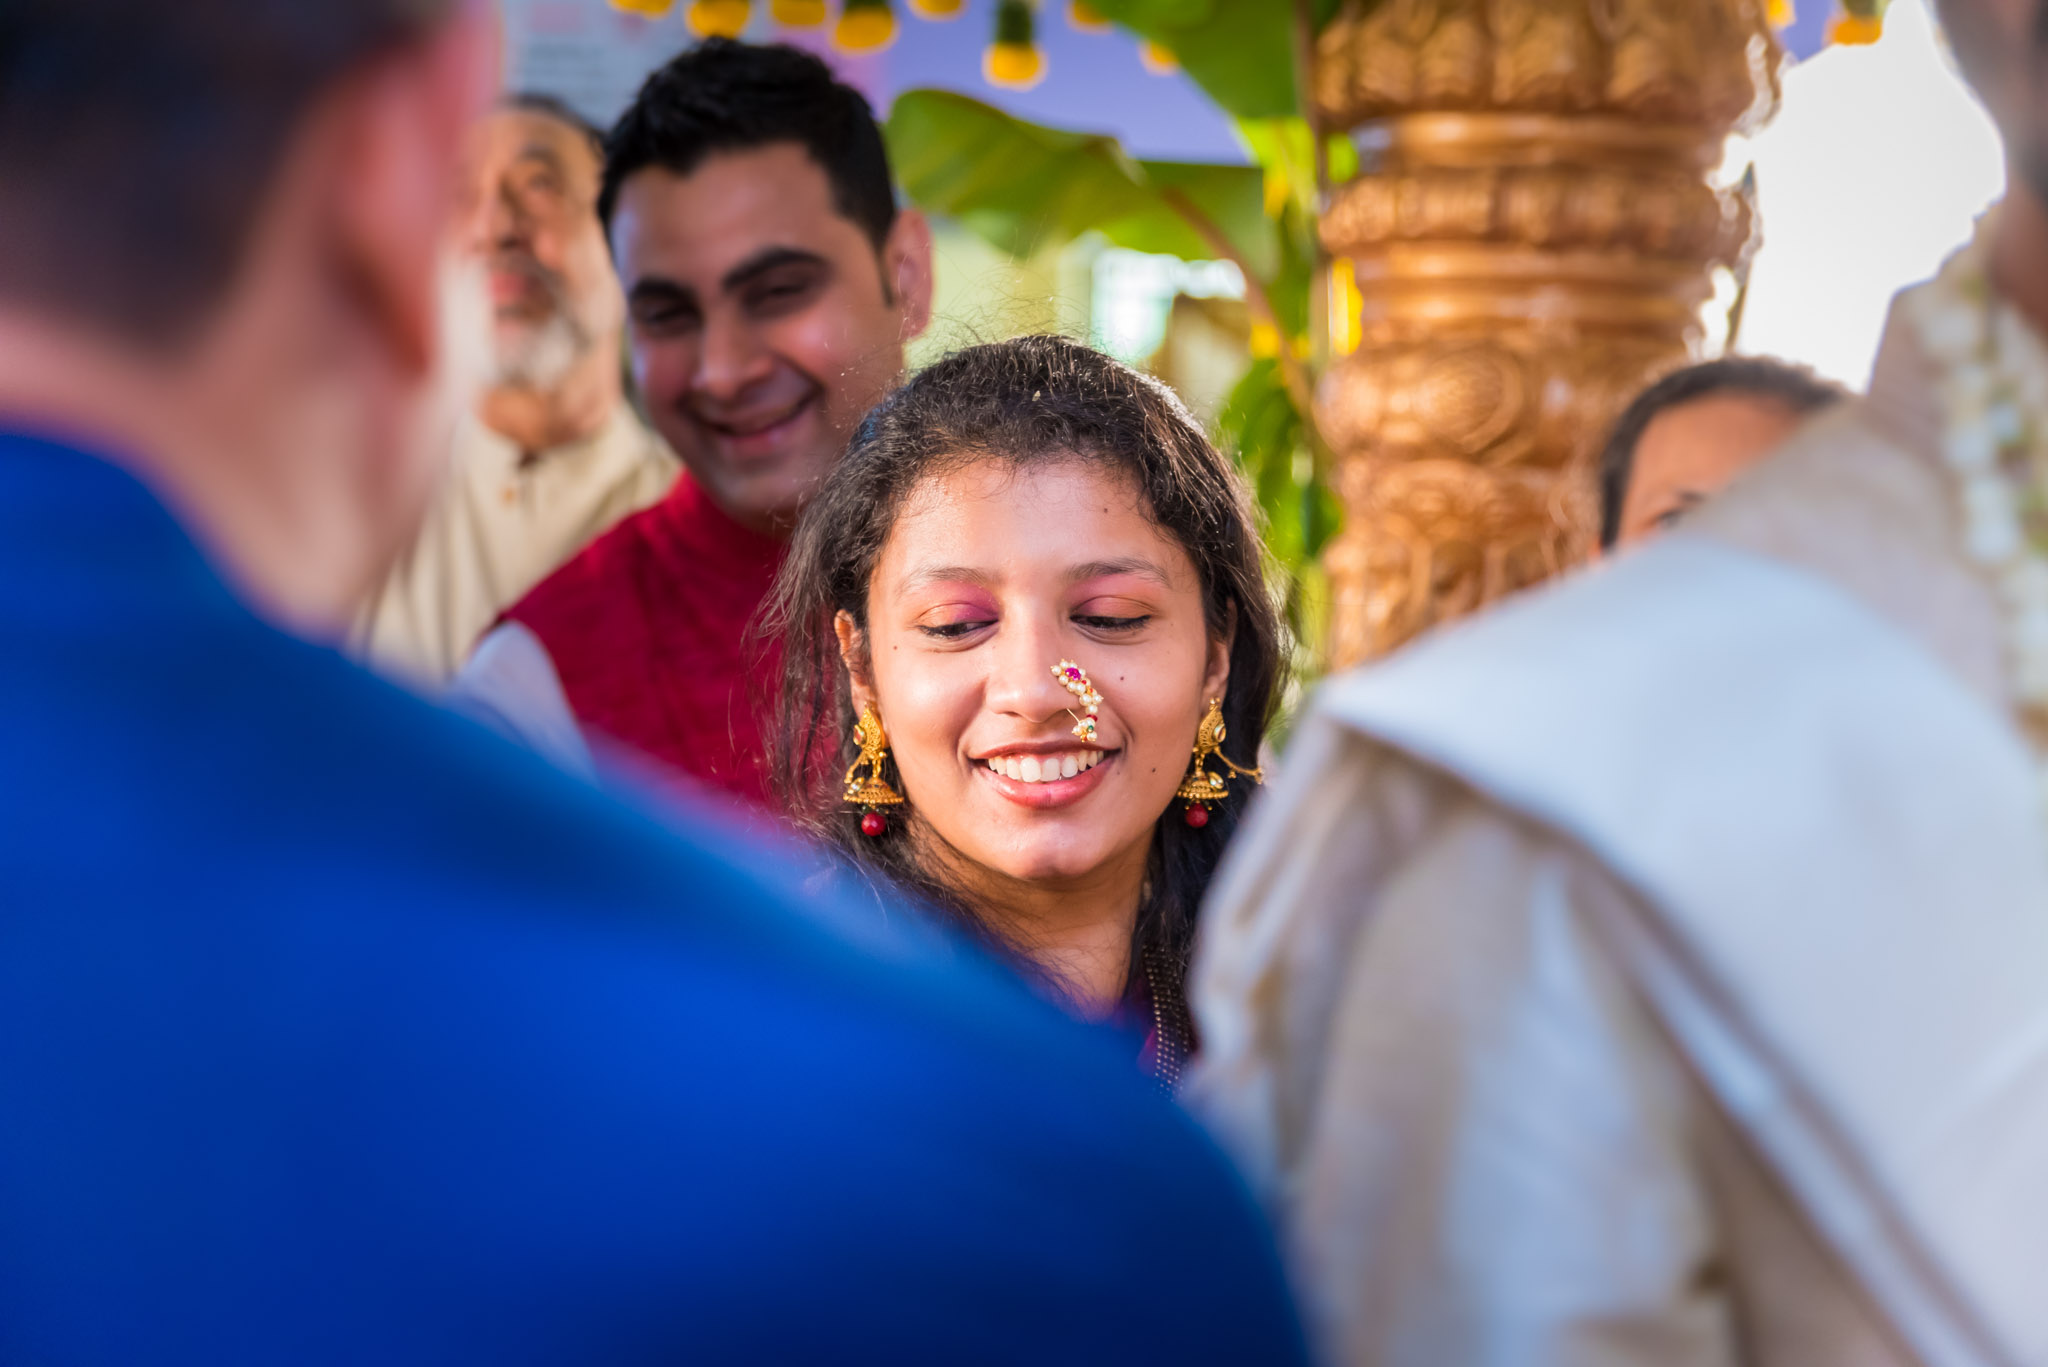 WhatKnot-Candid-Wedding-Photography-Mumbai-Bangalore-164